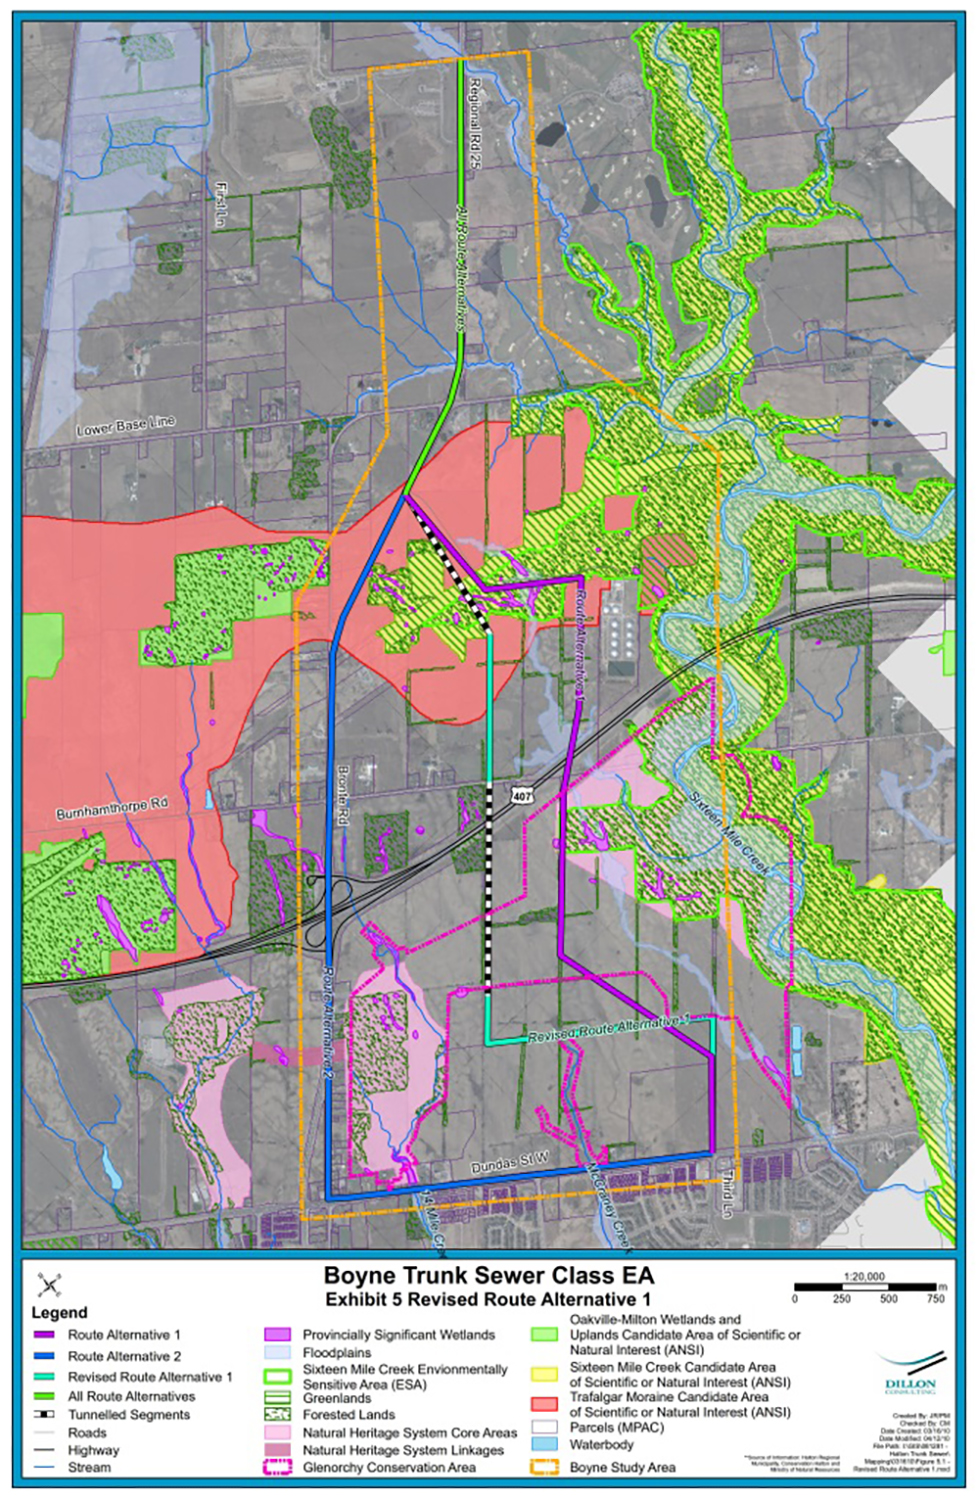 Boyne Trunk Sewer Preferred Alignment